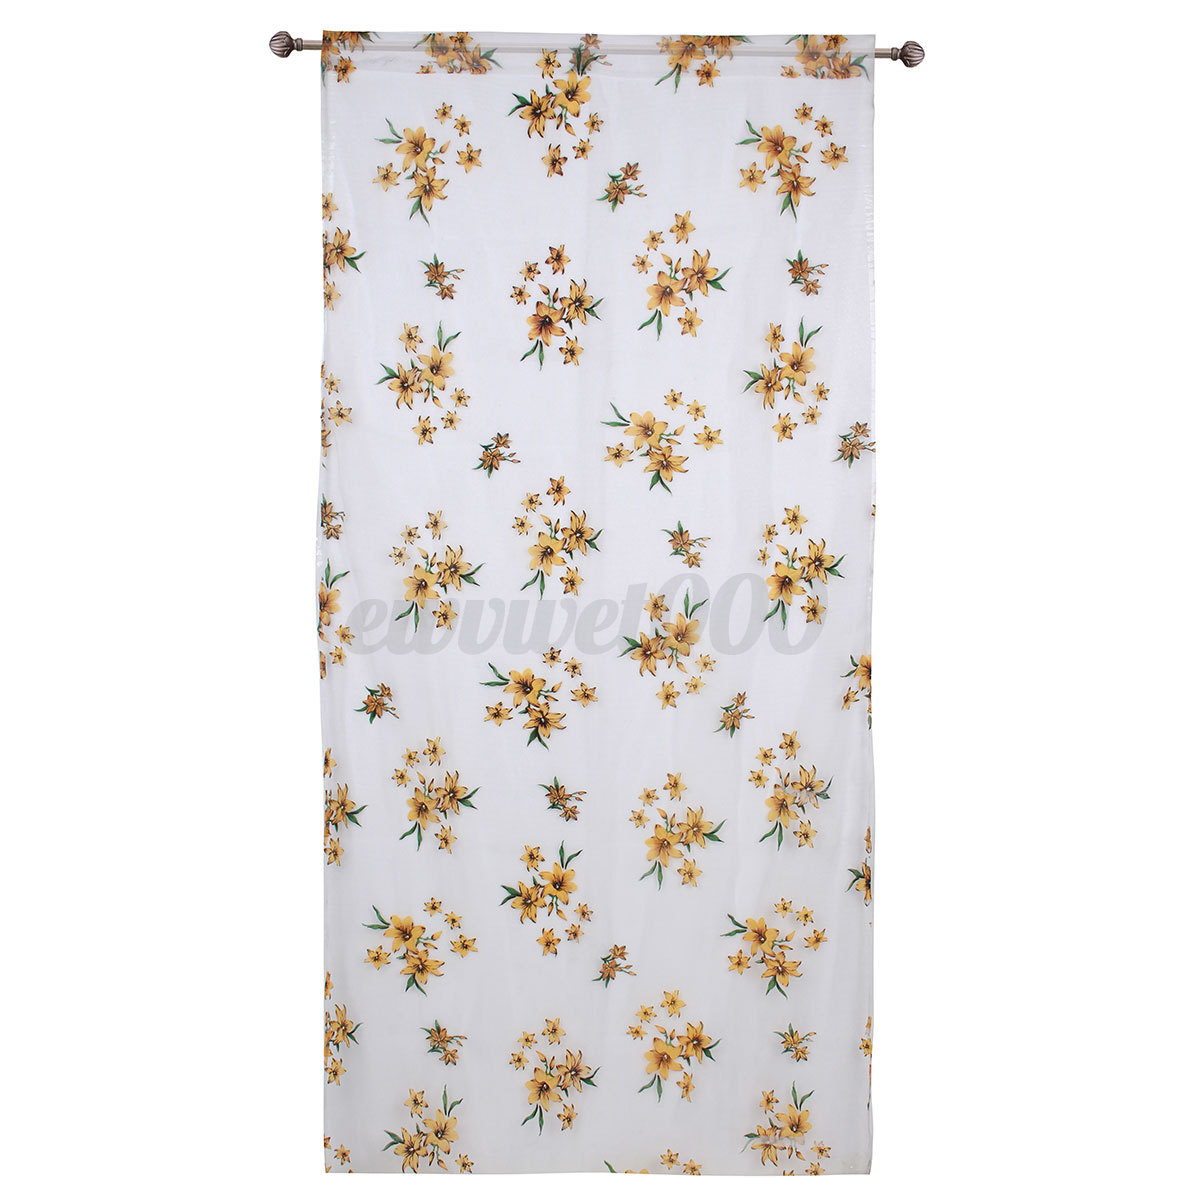 Floral Tulle Voile Door Divider Window Curtain Drape Panel Sheer Scarf Valances